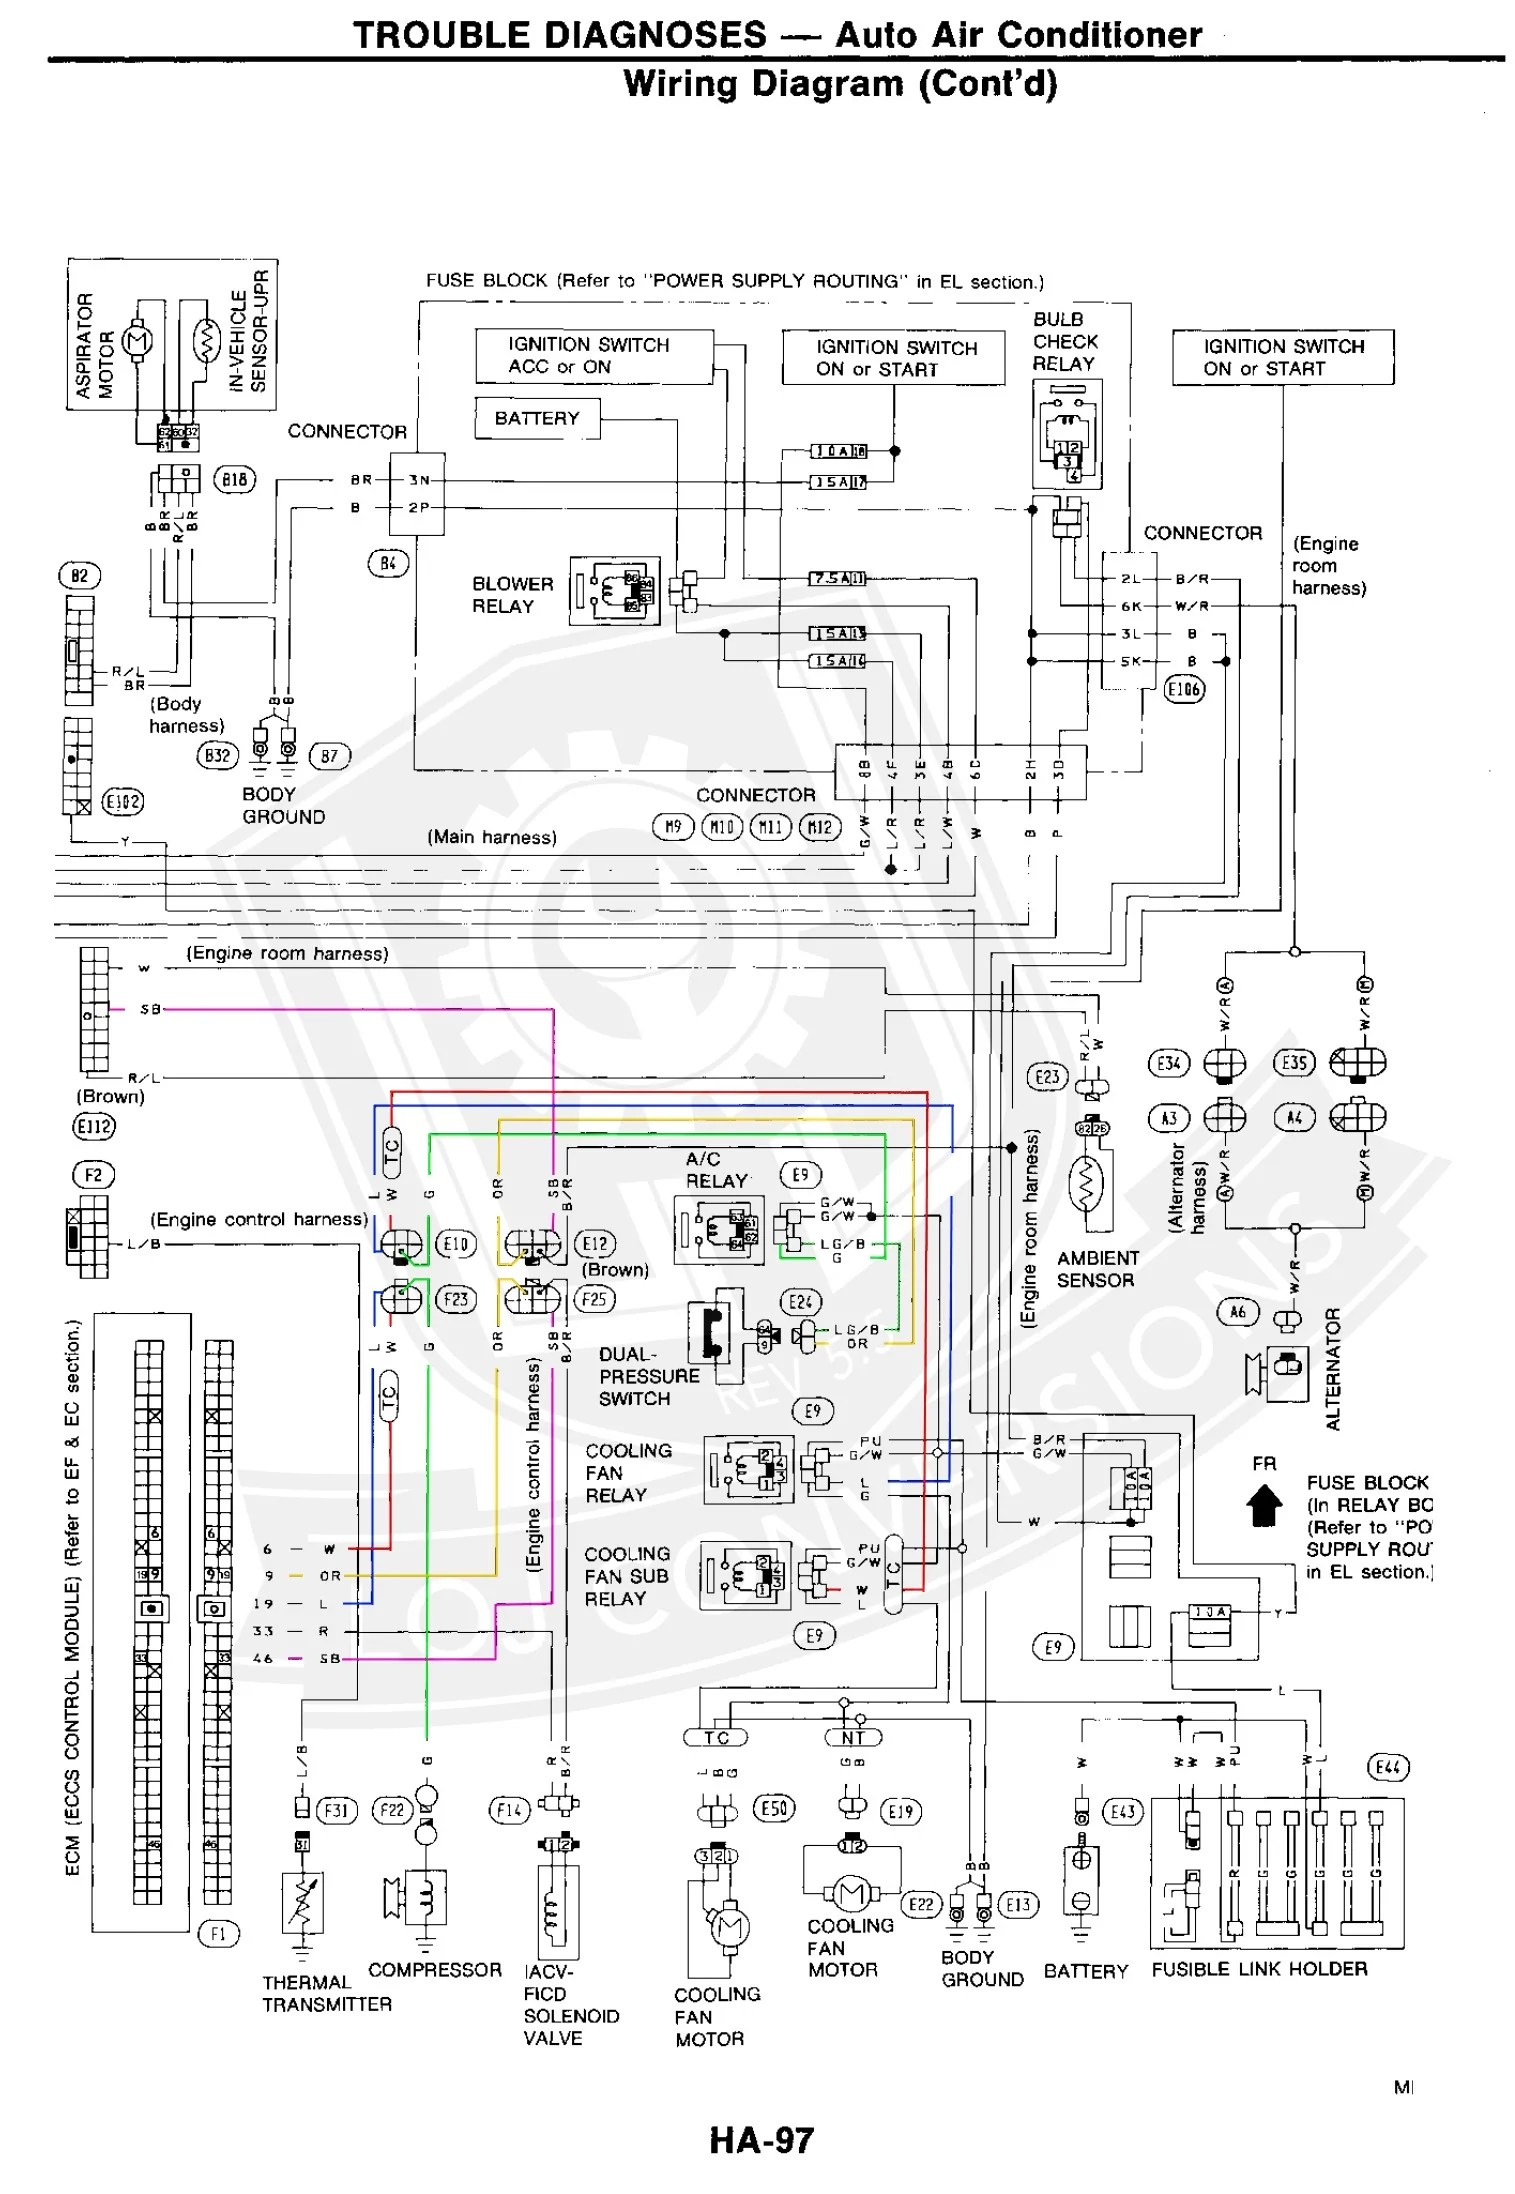 hight resolution of 300zx wire diagram wiring diagrams konsult 1990 300zx harness layout